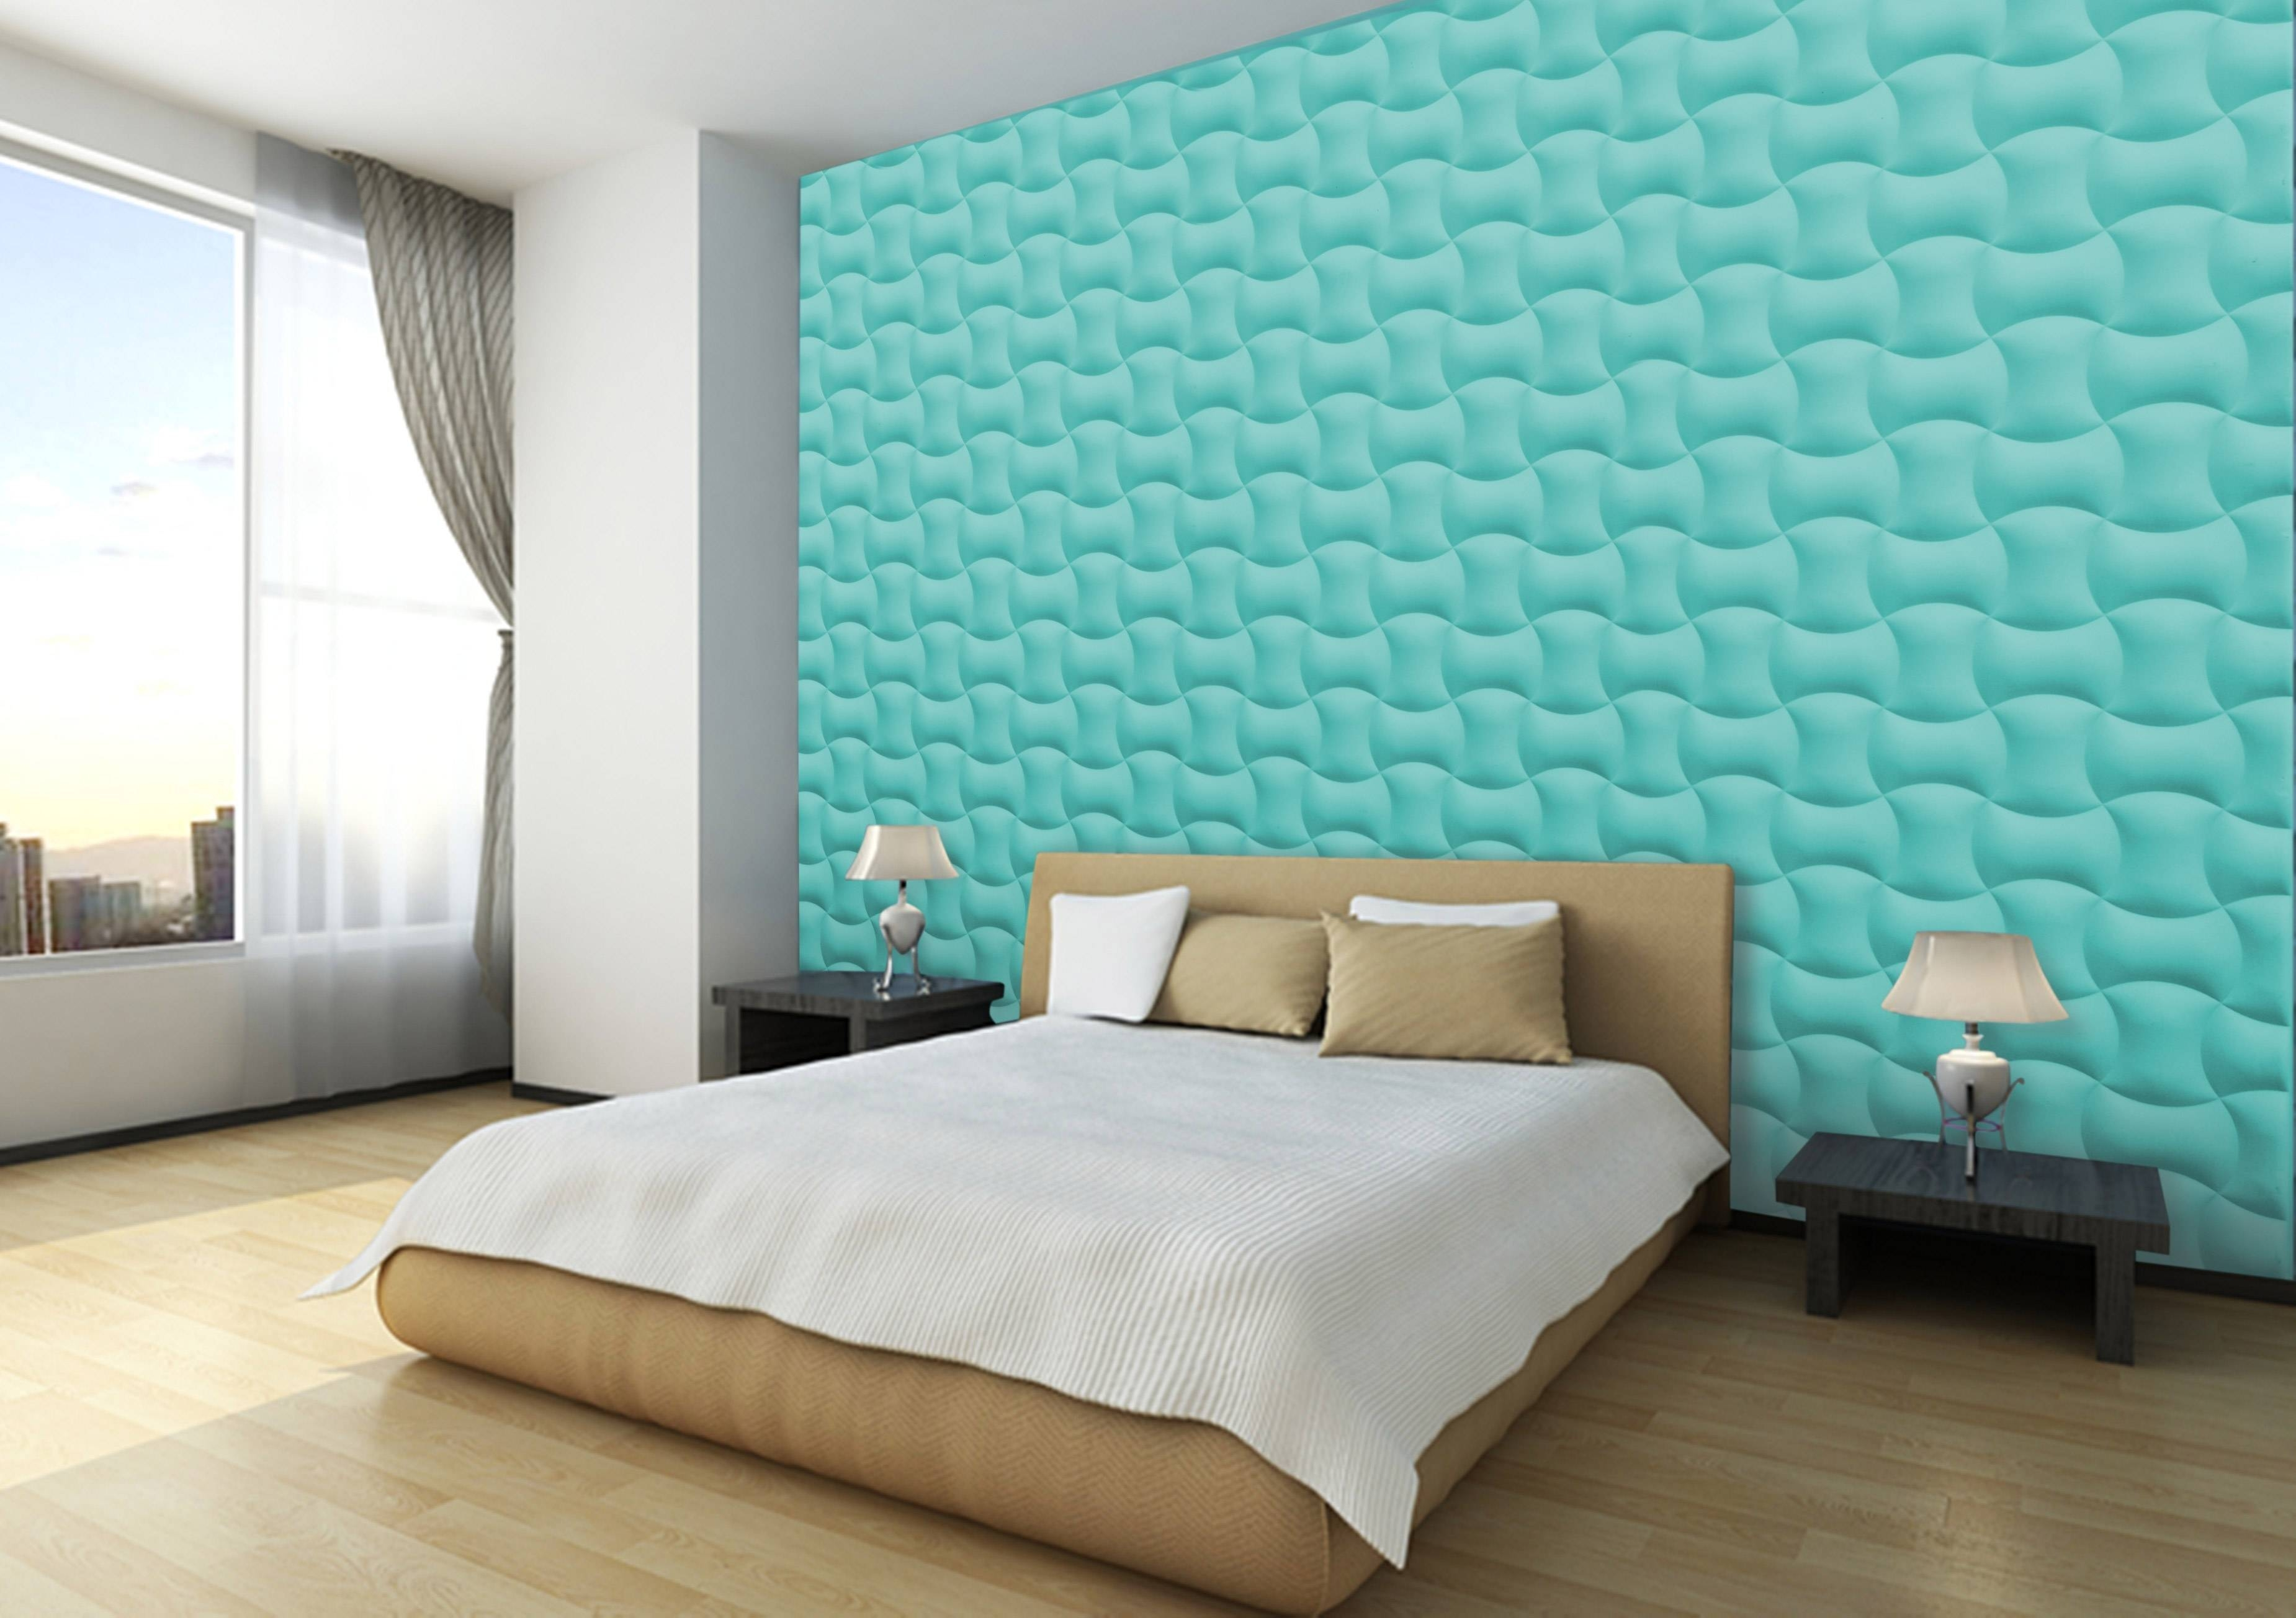 Easy Assemble 3d Wall Panels — The Home Redesign Within 2018 3d Plastic Wall Panels (Gallery 9 of 20)